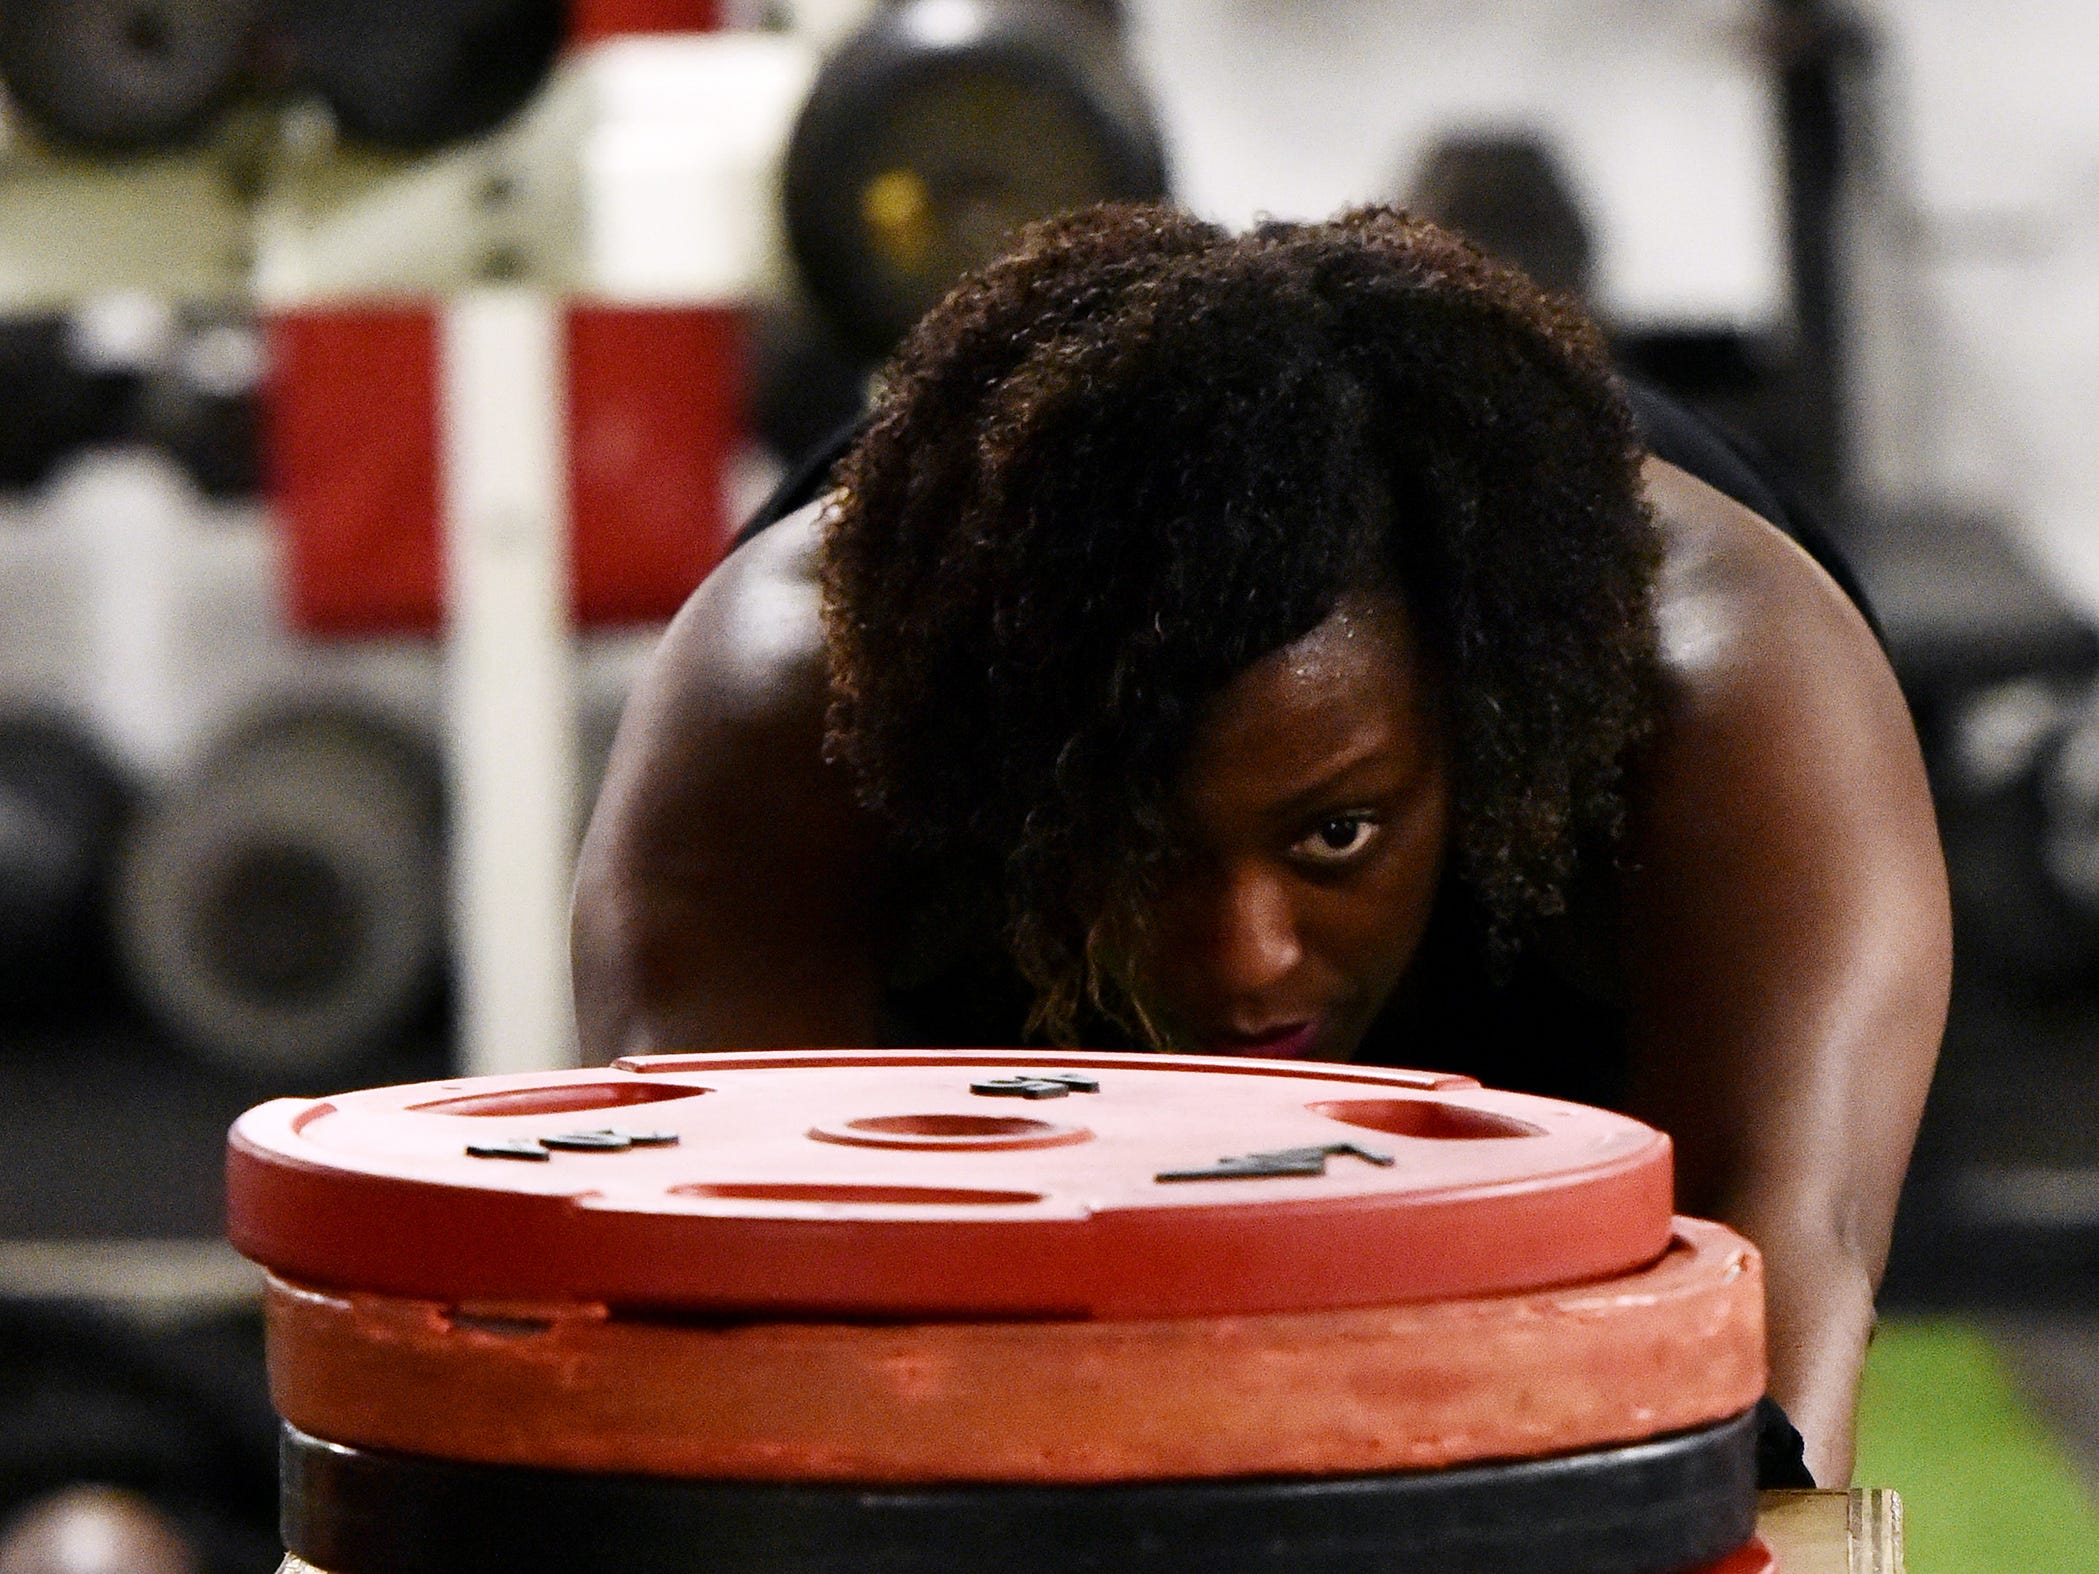 Jil Littlejohn pushes weights on a box during a work out at Brit's Brothers Gym in Greenville.